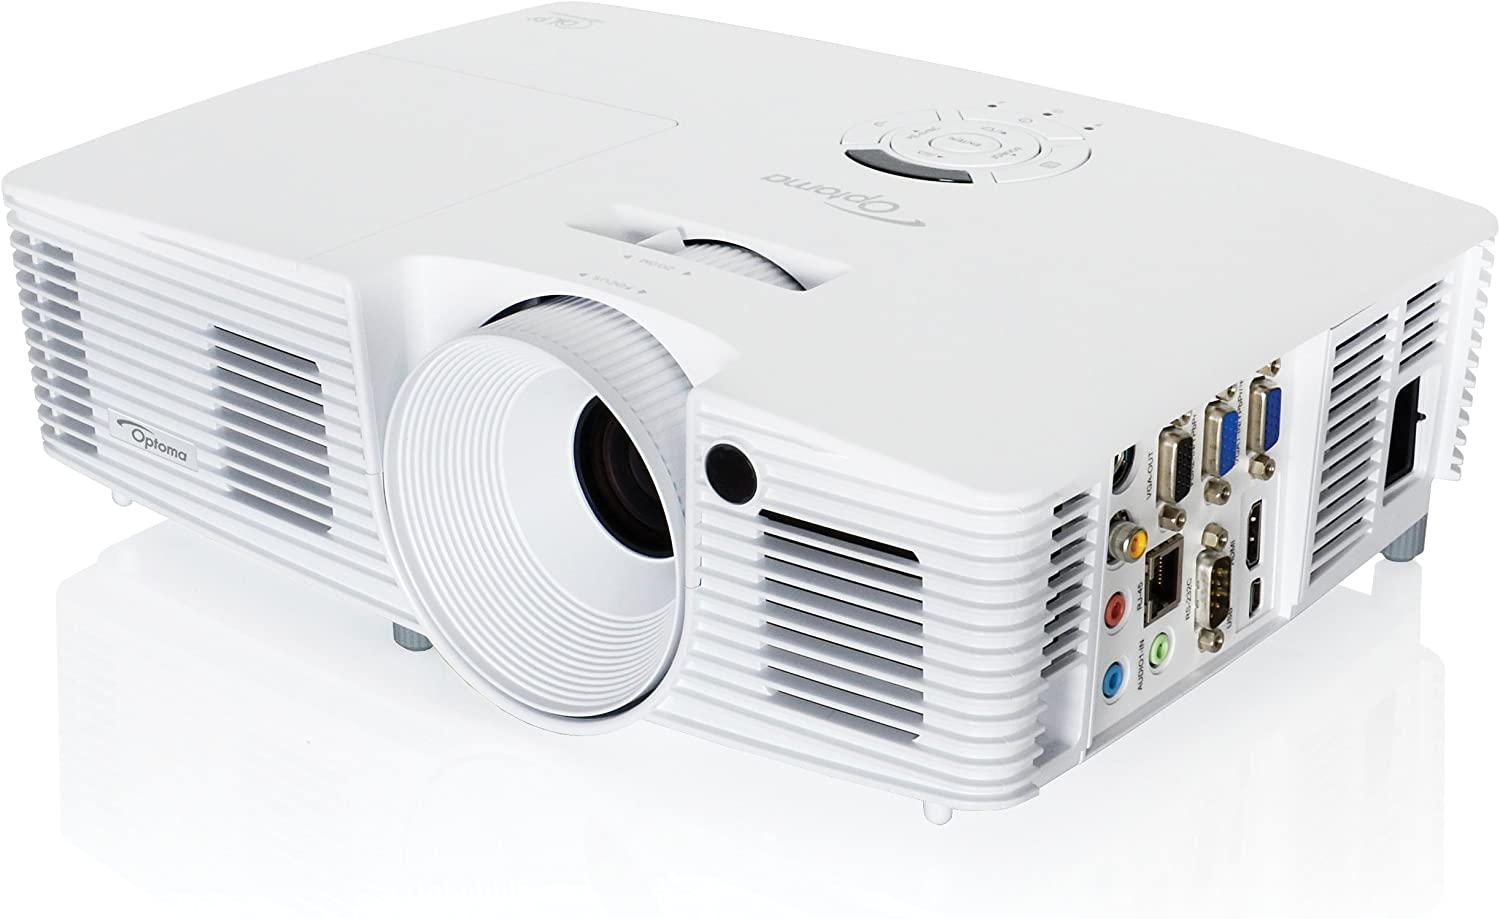 Optoma W351 Full 3D WXGA 3800 Lumen Multimedia DLP Projector with Superior Connectivity and Extended Lamp Life